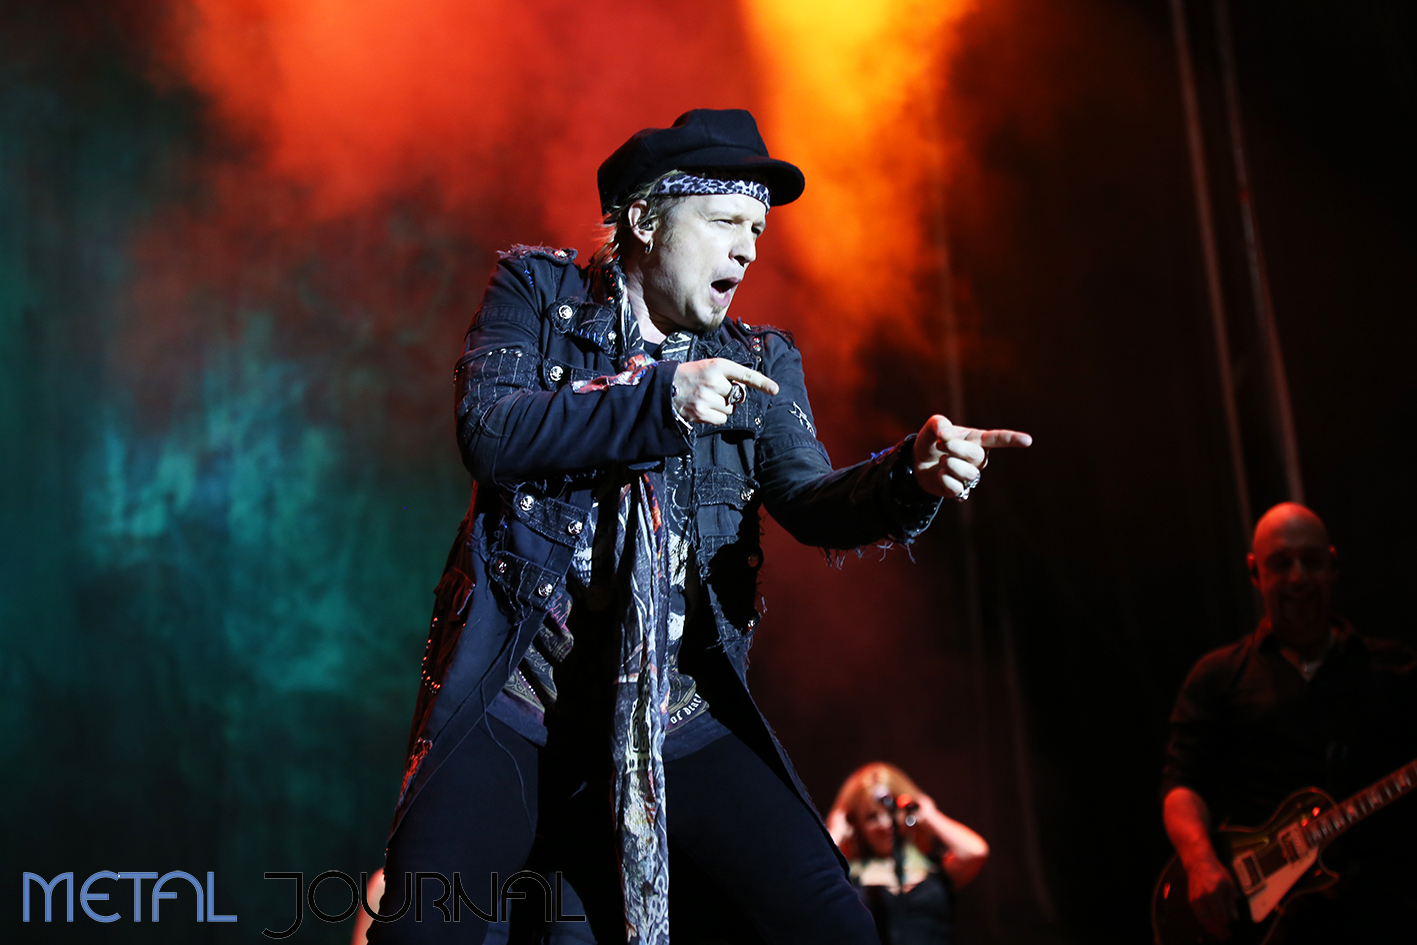 avantasia- leyendas del rock 2019 metal journal pic 2